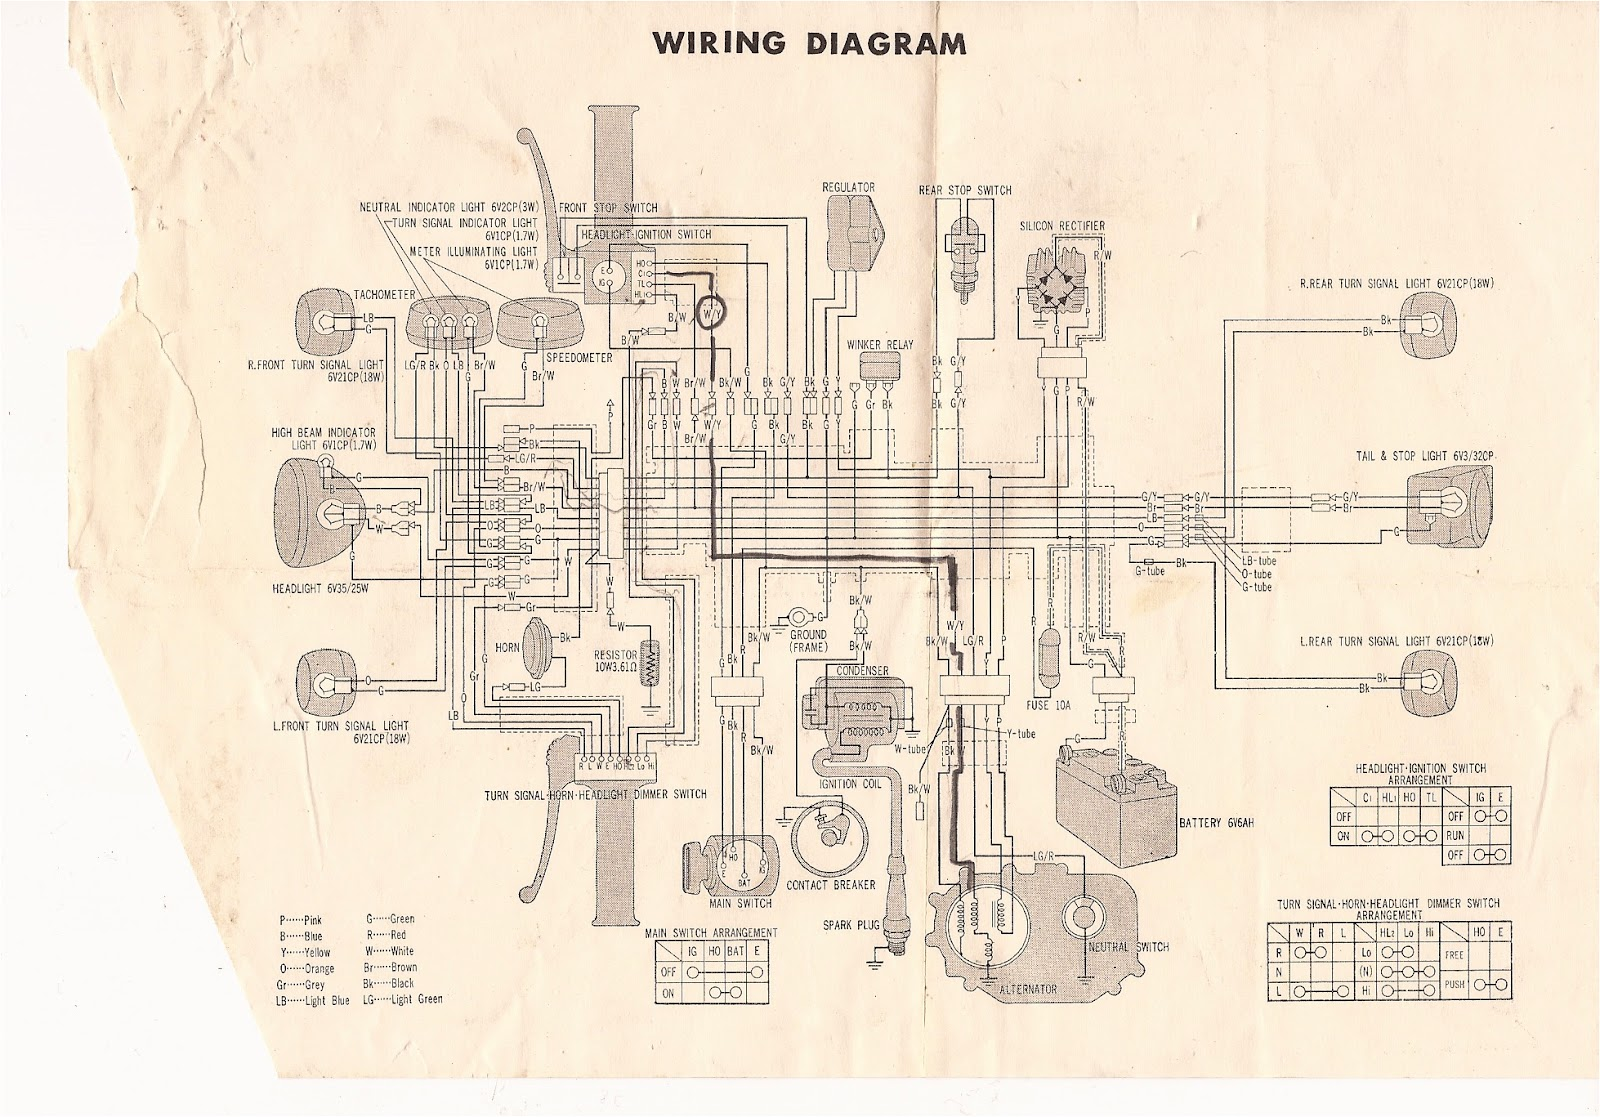 XL350+Wiring+diagram r4l xl350 wiring diagram (and xl250),1974 Honda Cb450 Wiring Diagram